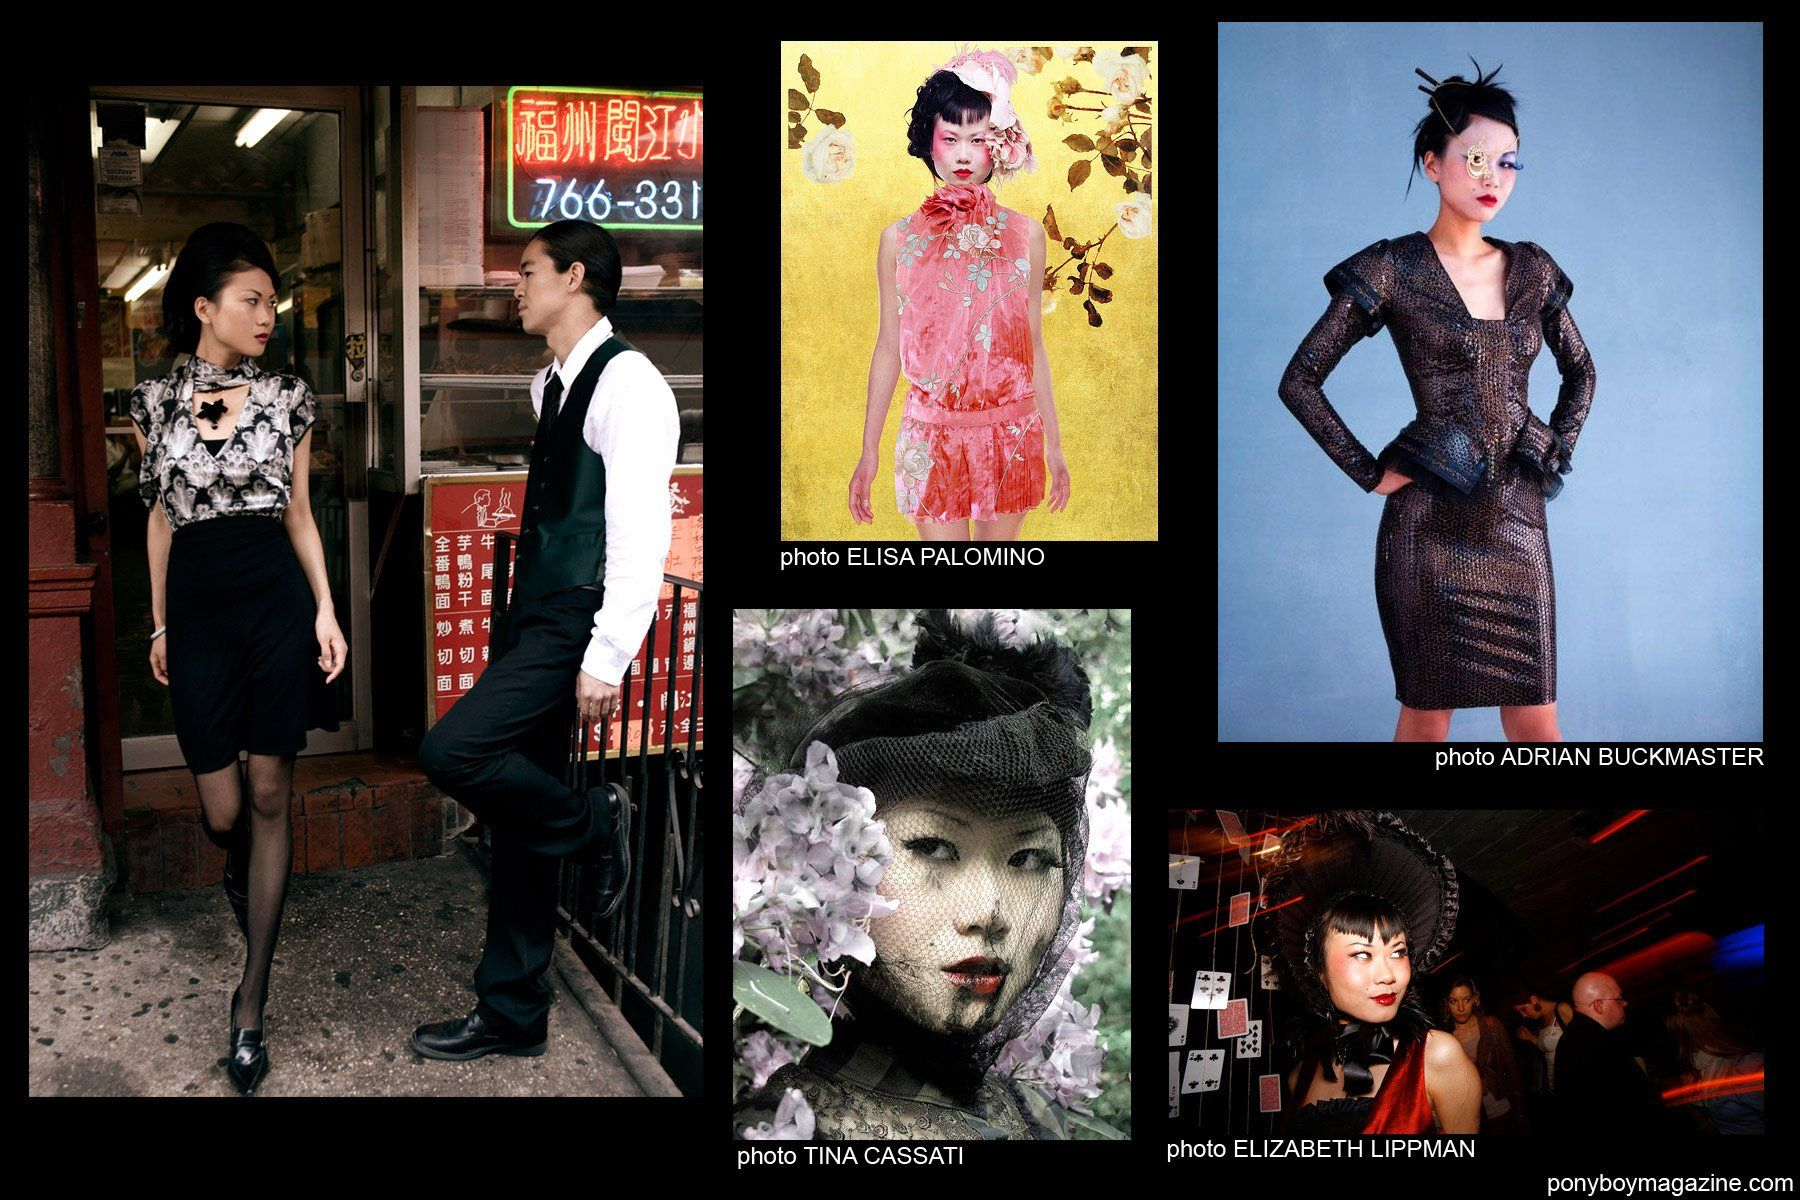 Collage of photos from Shien Lee's collection for Ponyboy Magazine.